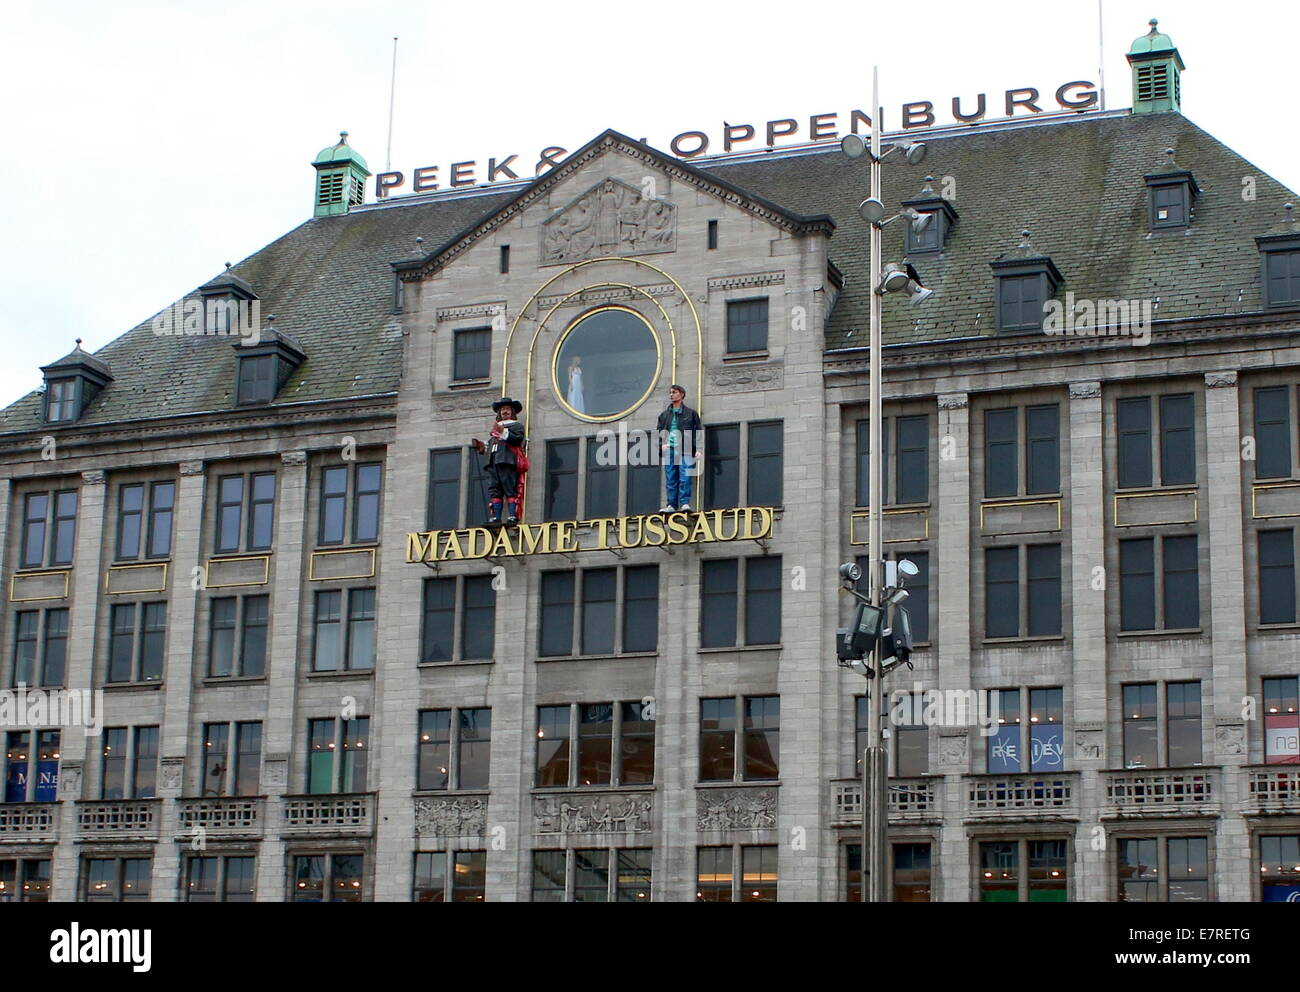 Exterior and facade of Madame Tussauds wax sculpture museum at Dam Square in Amsterdam The Netherlands - Stock Image